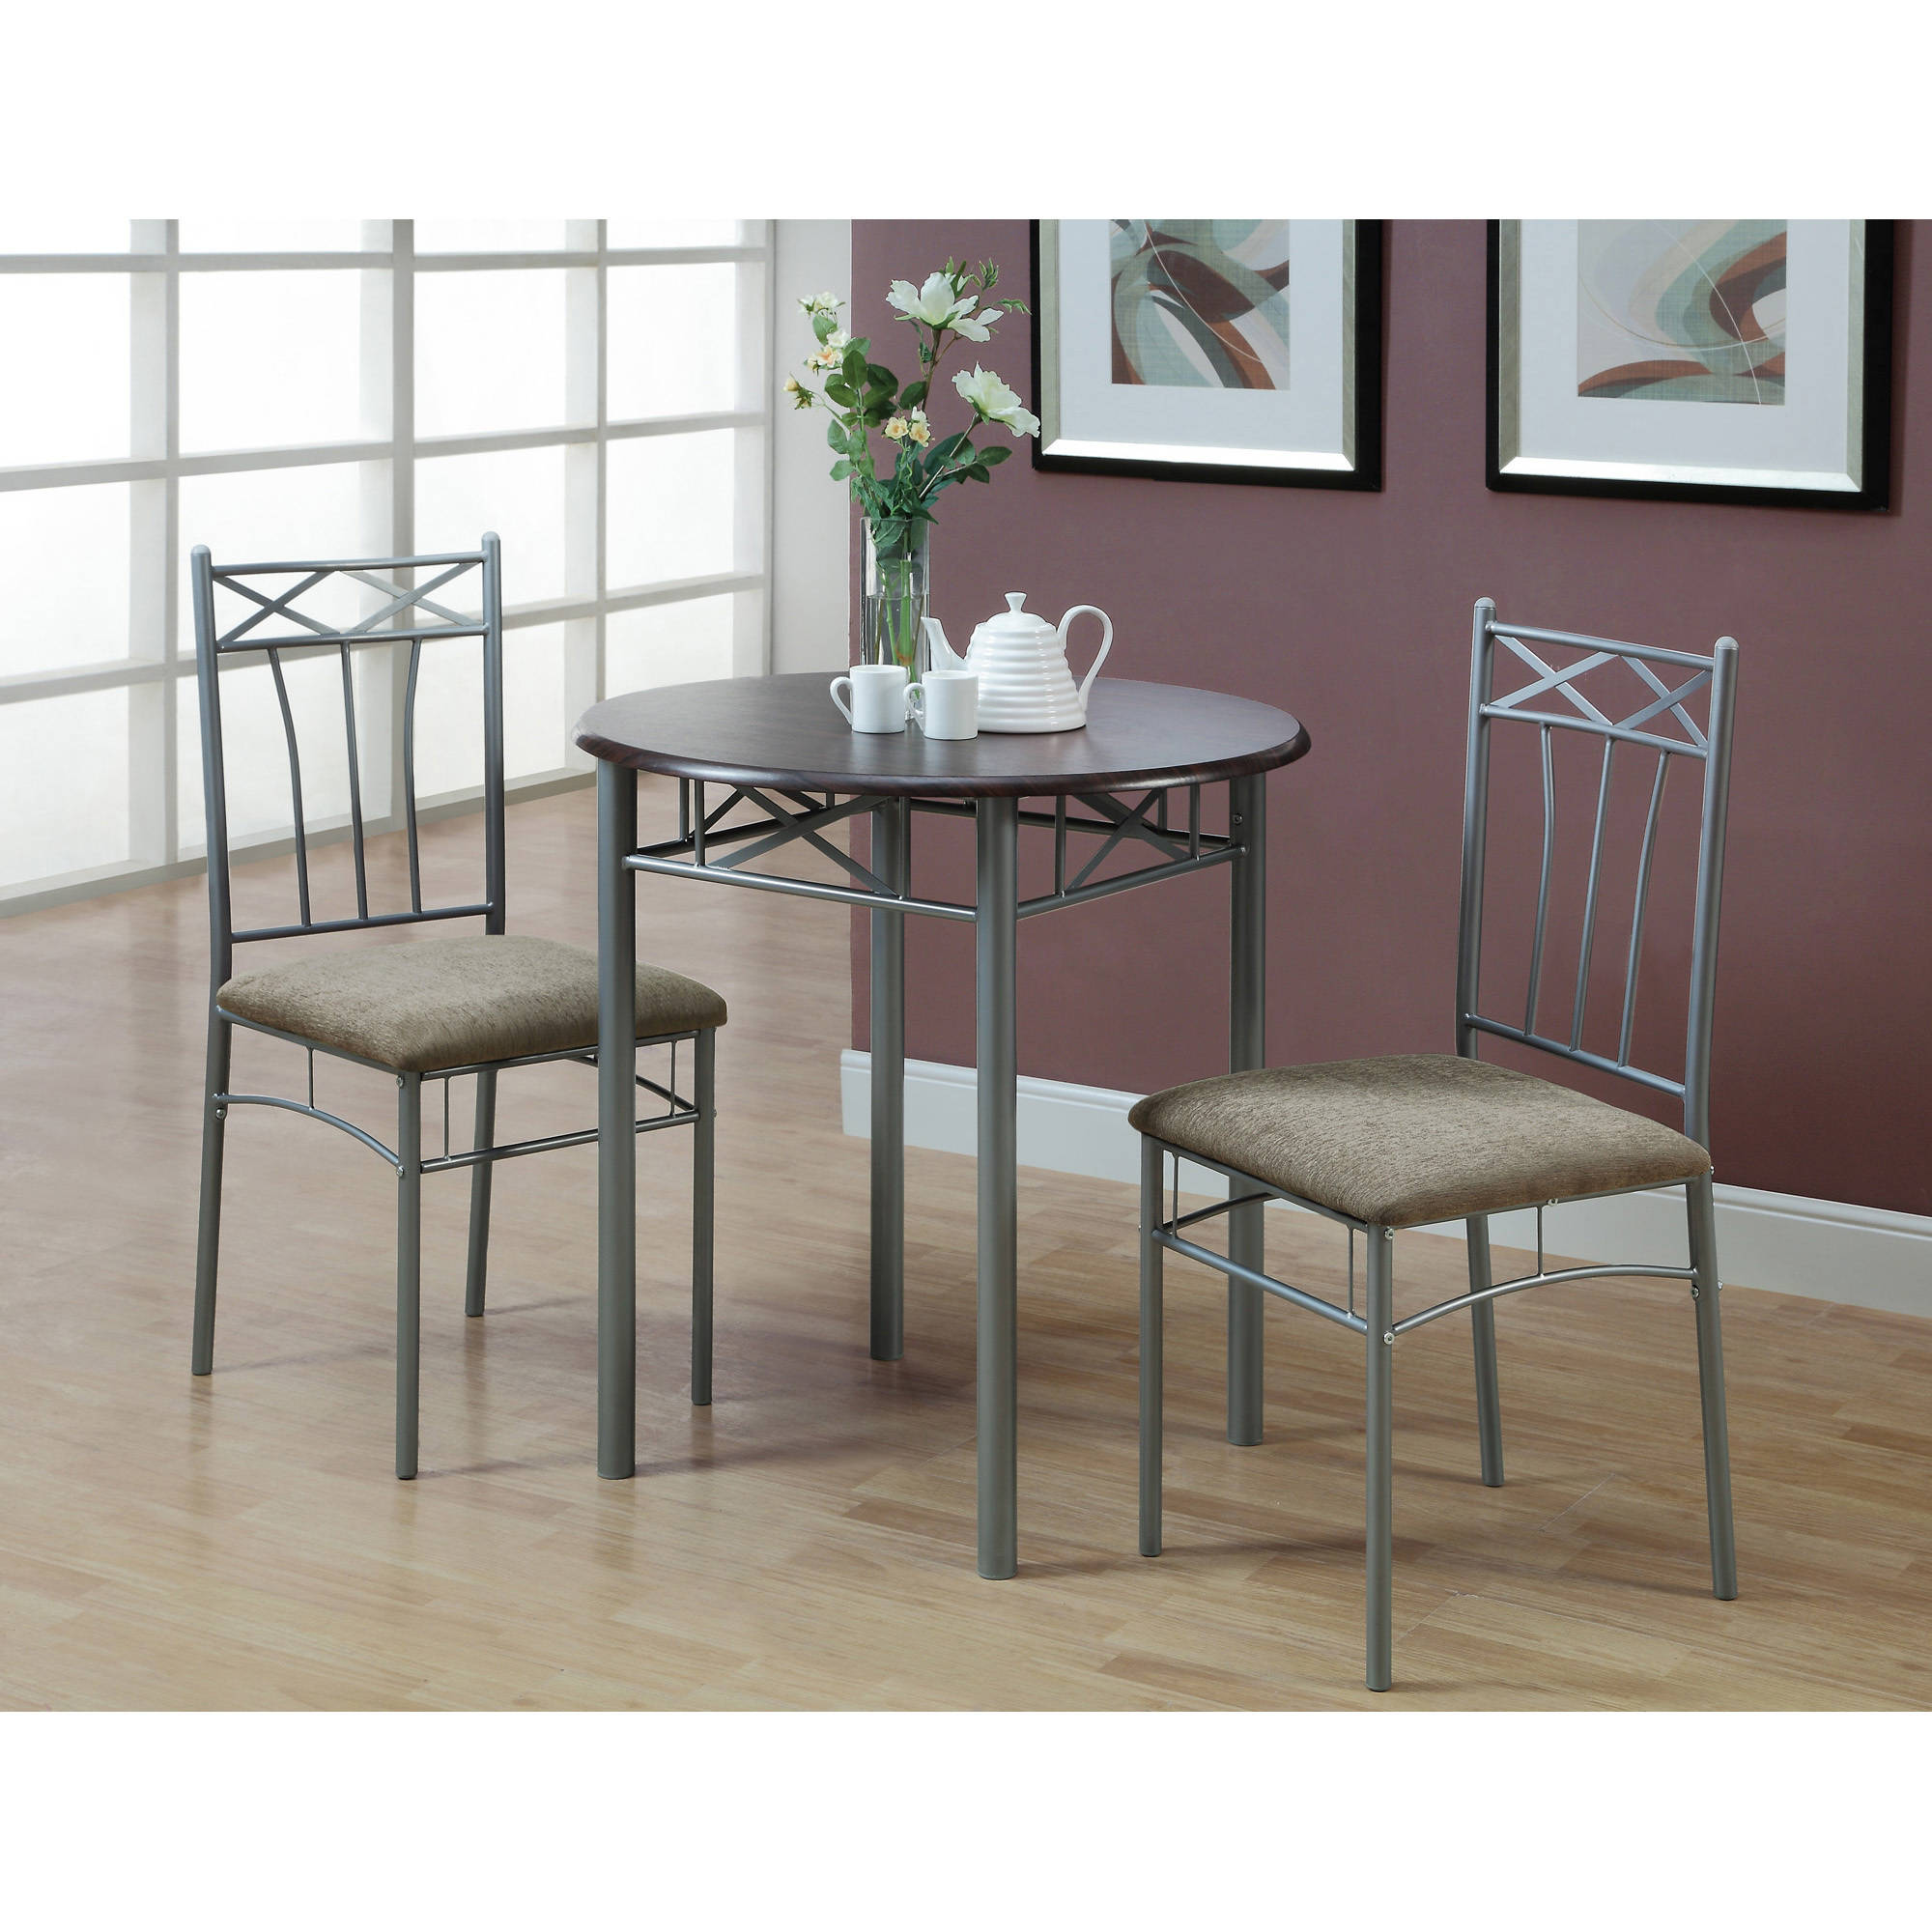 monarch dining set 3pcs set cappuccino silver metal walmart